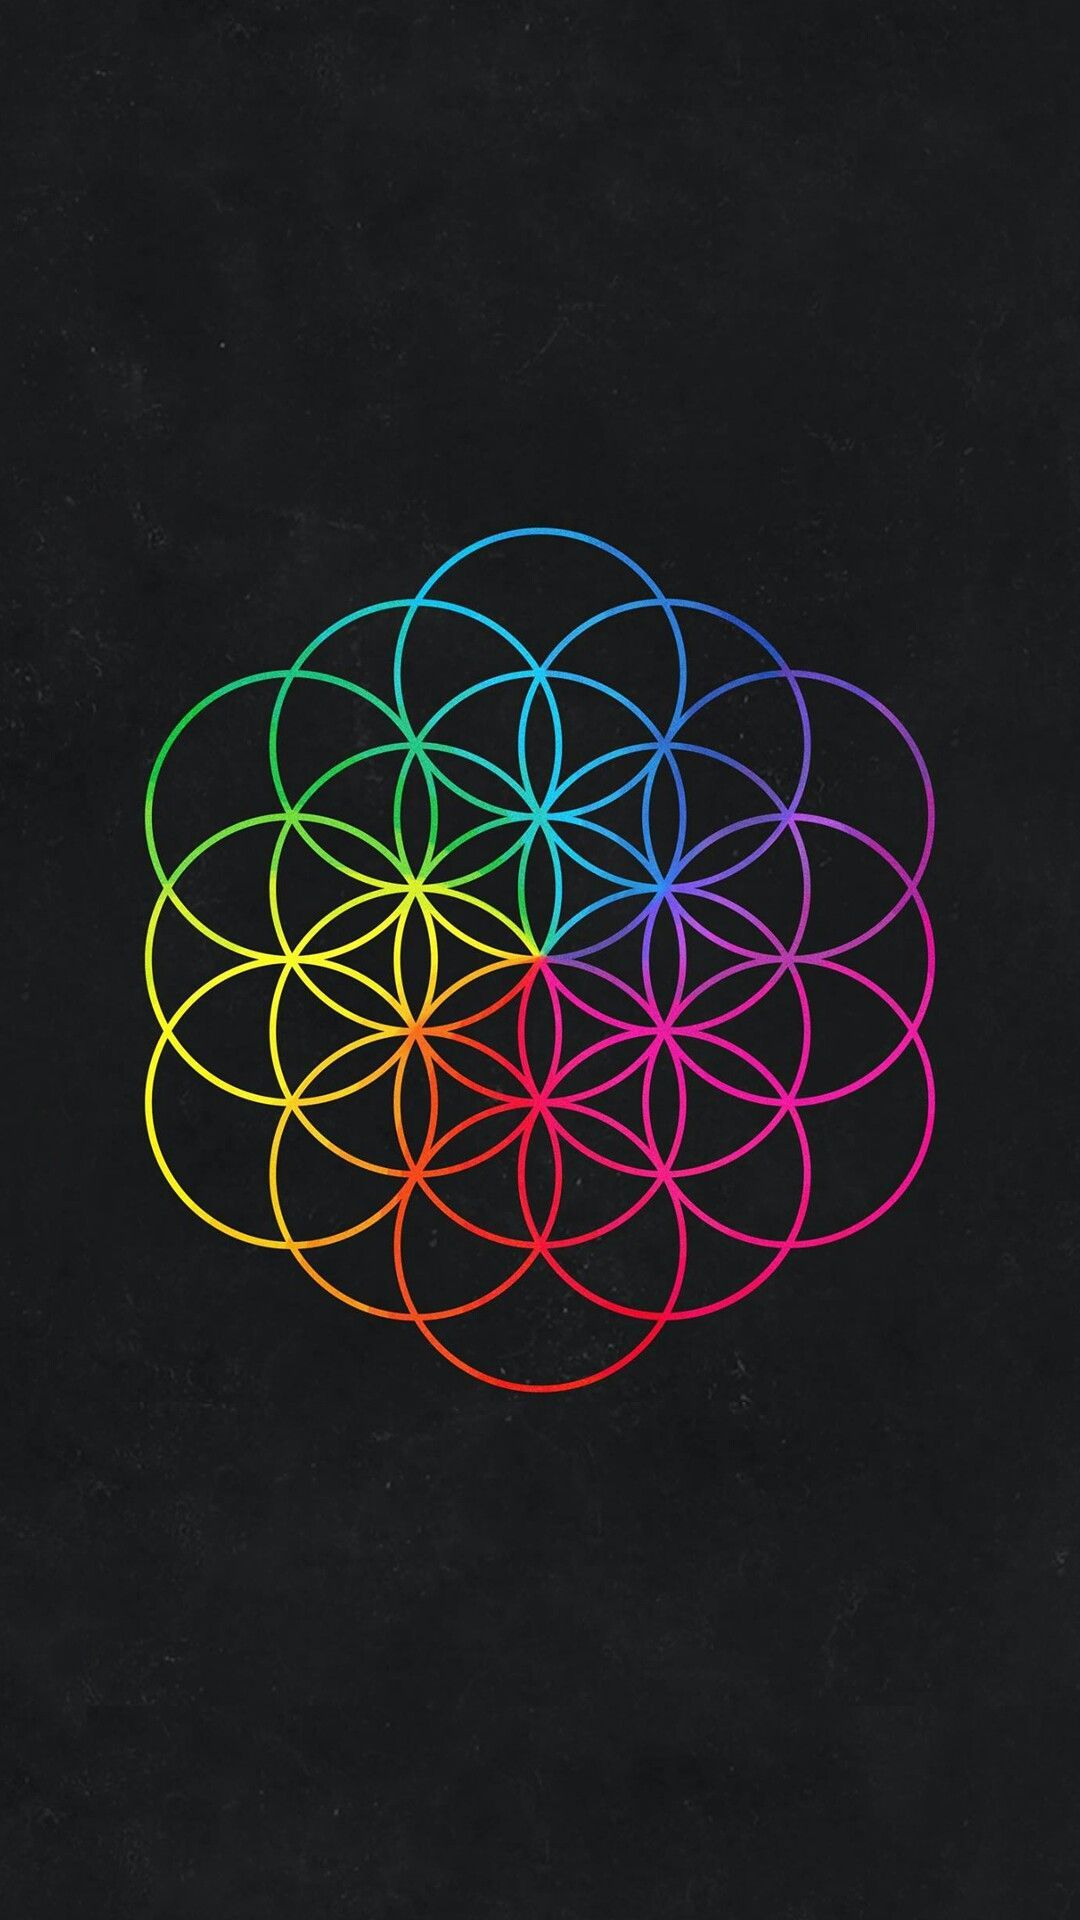 Coldplay Logo - Beautiful World | Chris Martin ☆ Coldplay | Pinterest | Coldplay ...